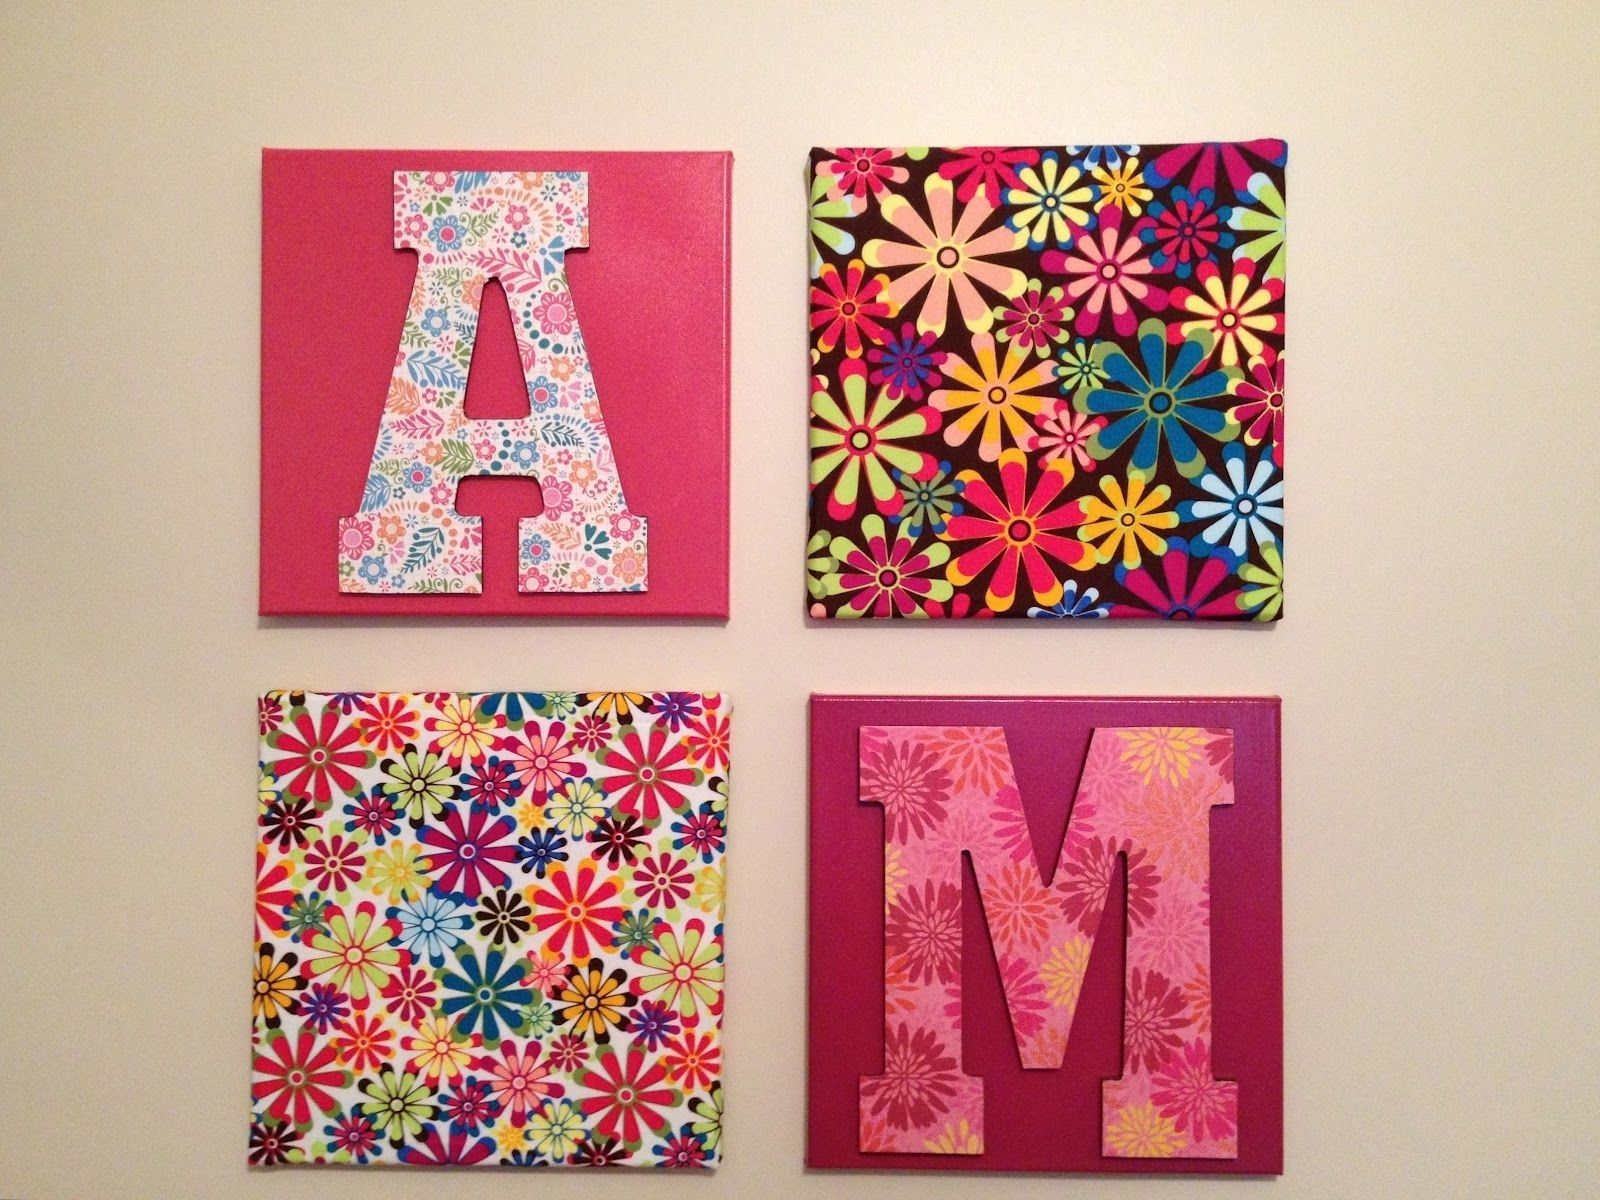 Craft Ideas For Girls | Living Unbound: Diy Easy Wall Hanging Regarding 2017 Red Fabric Wall Art (View 7 of 15)